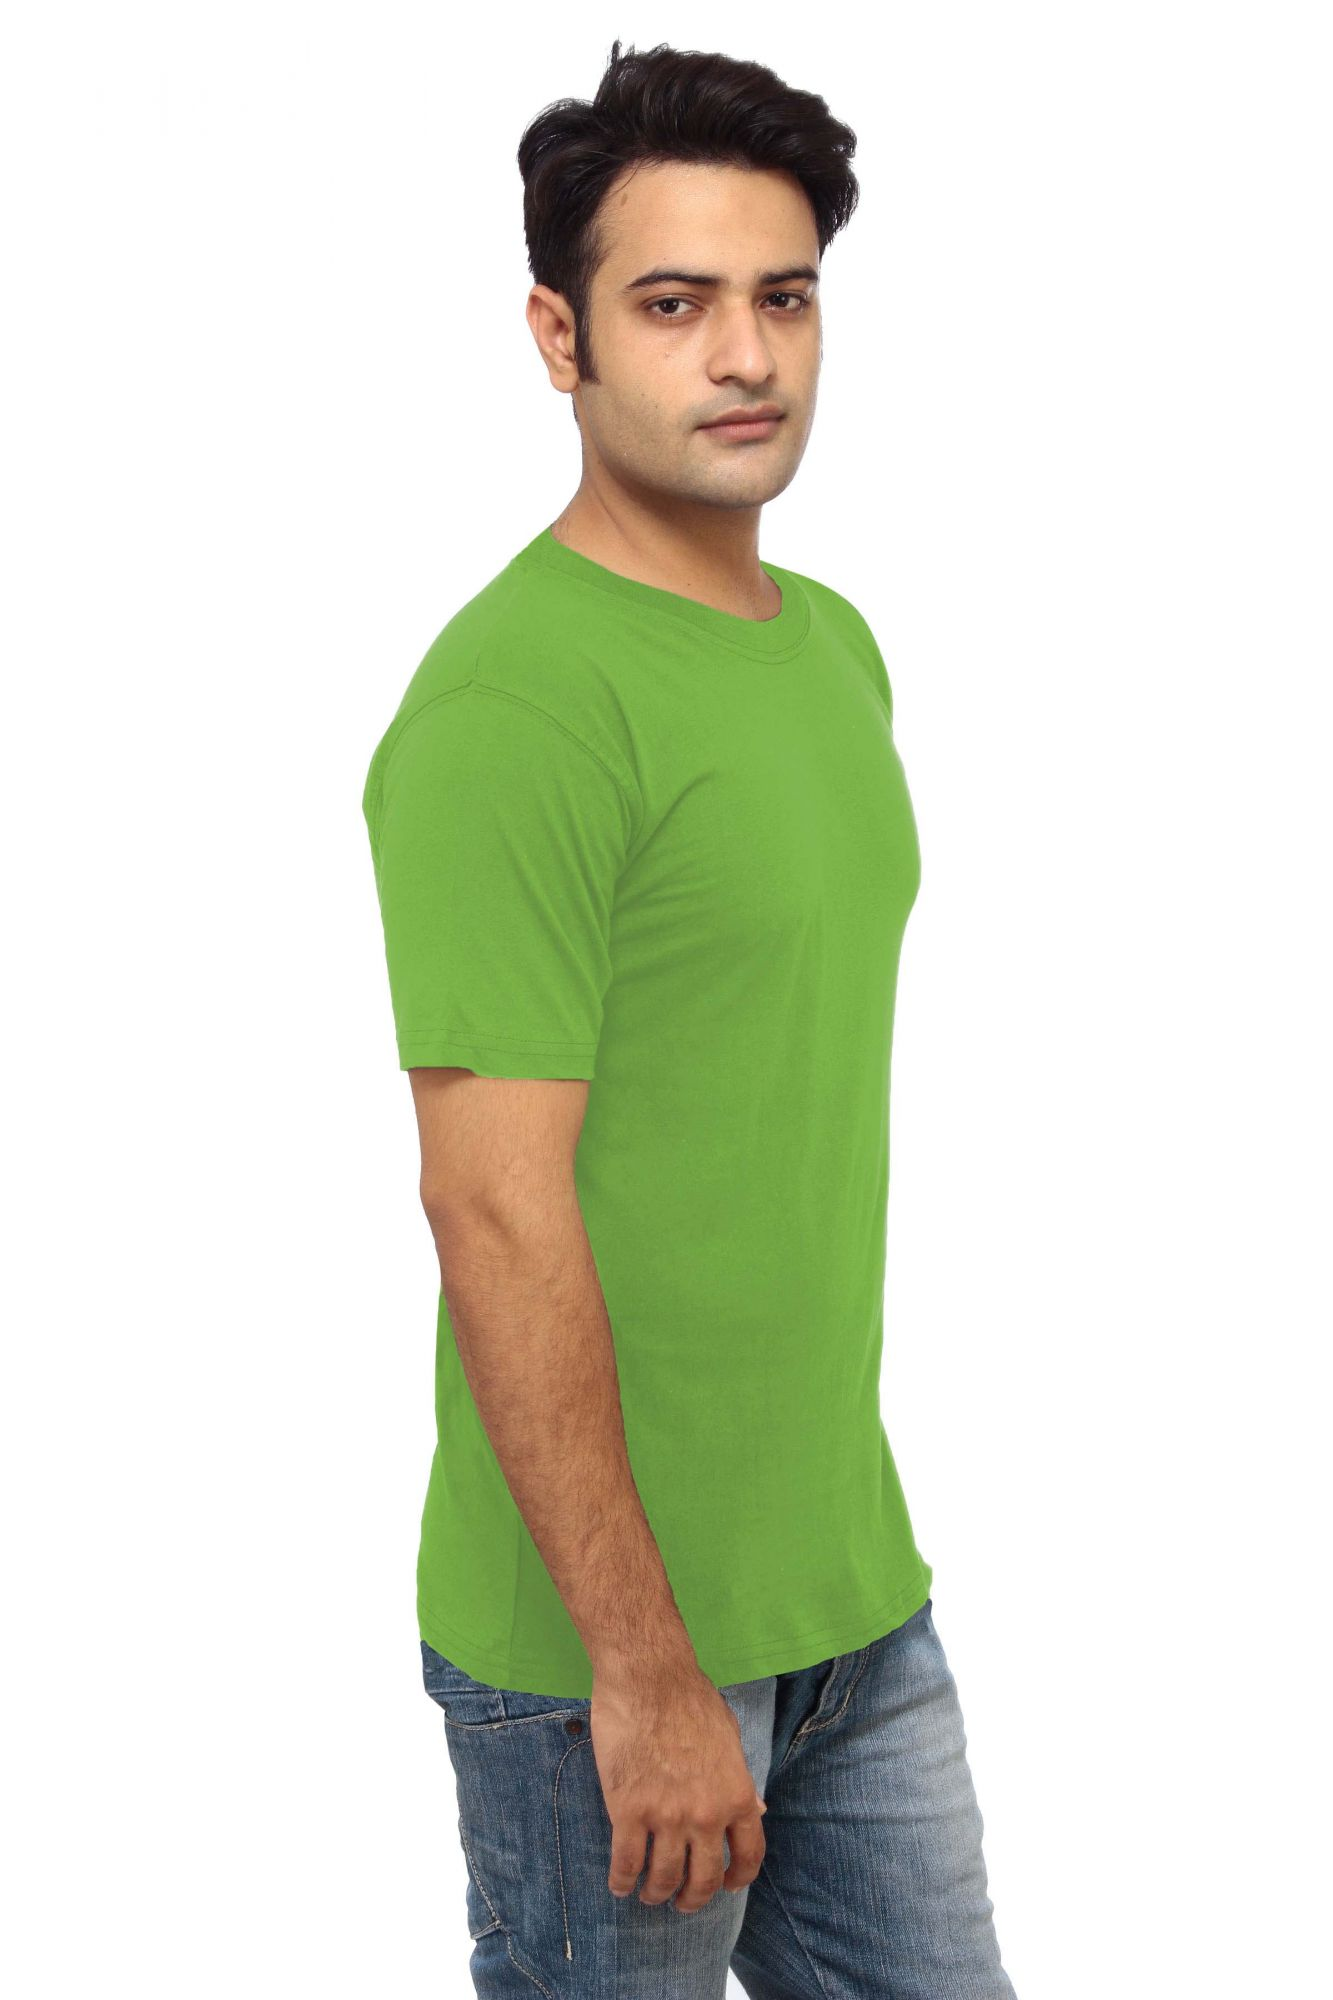 DS Green Cotton Stylish Slim Fit Round Neck T-shirt